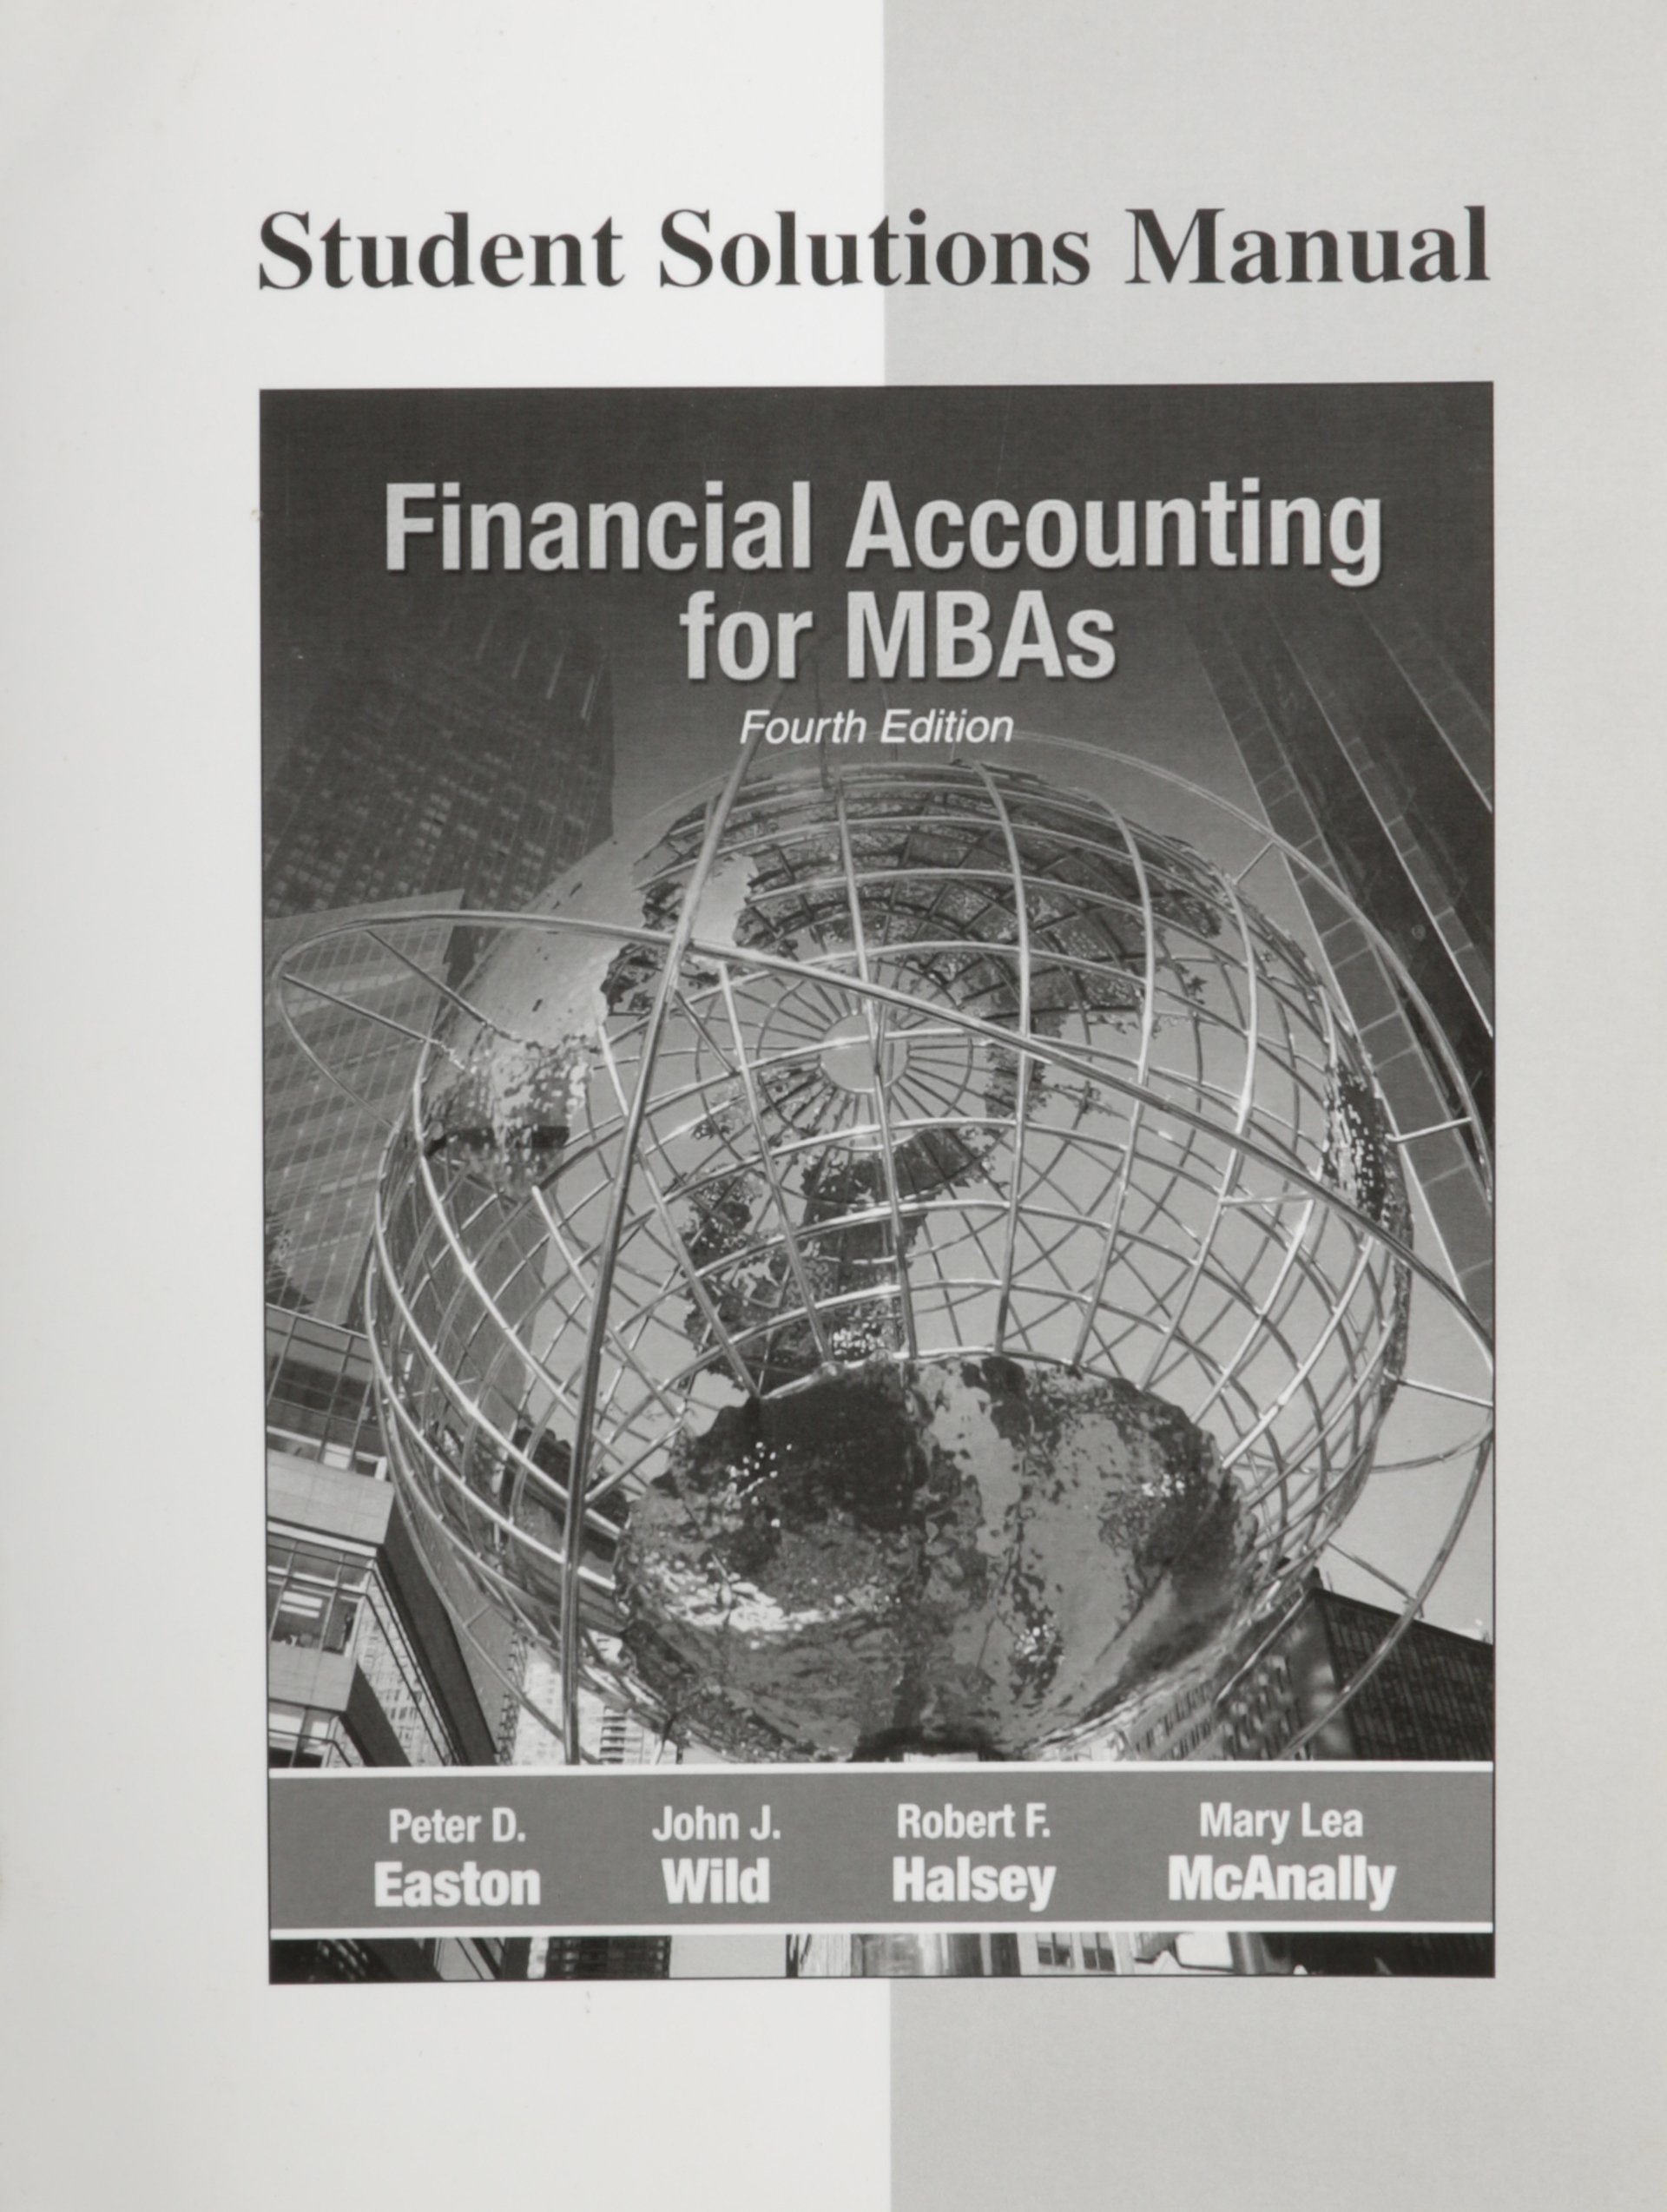 Financial Accounting for MBAs-Student Solution Manual by Peter D. Easton:  Peter D. Easton: 9781934319451: Amazon.com: Books